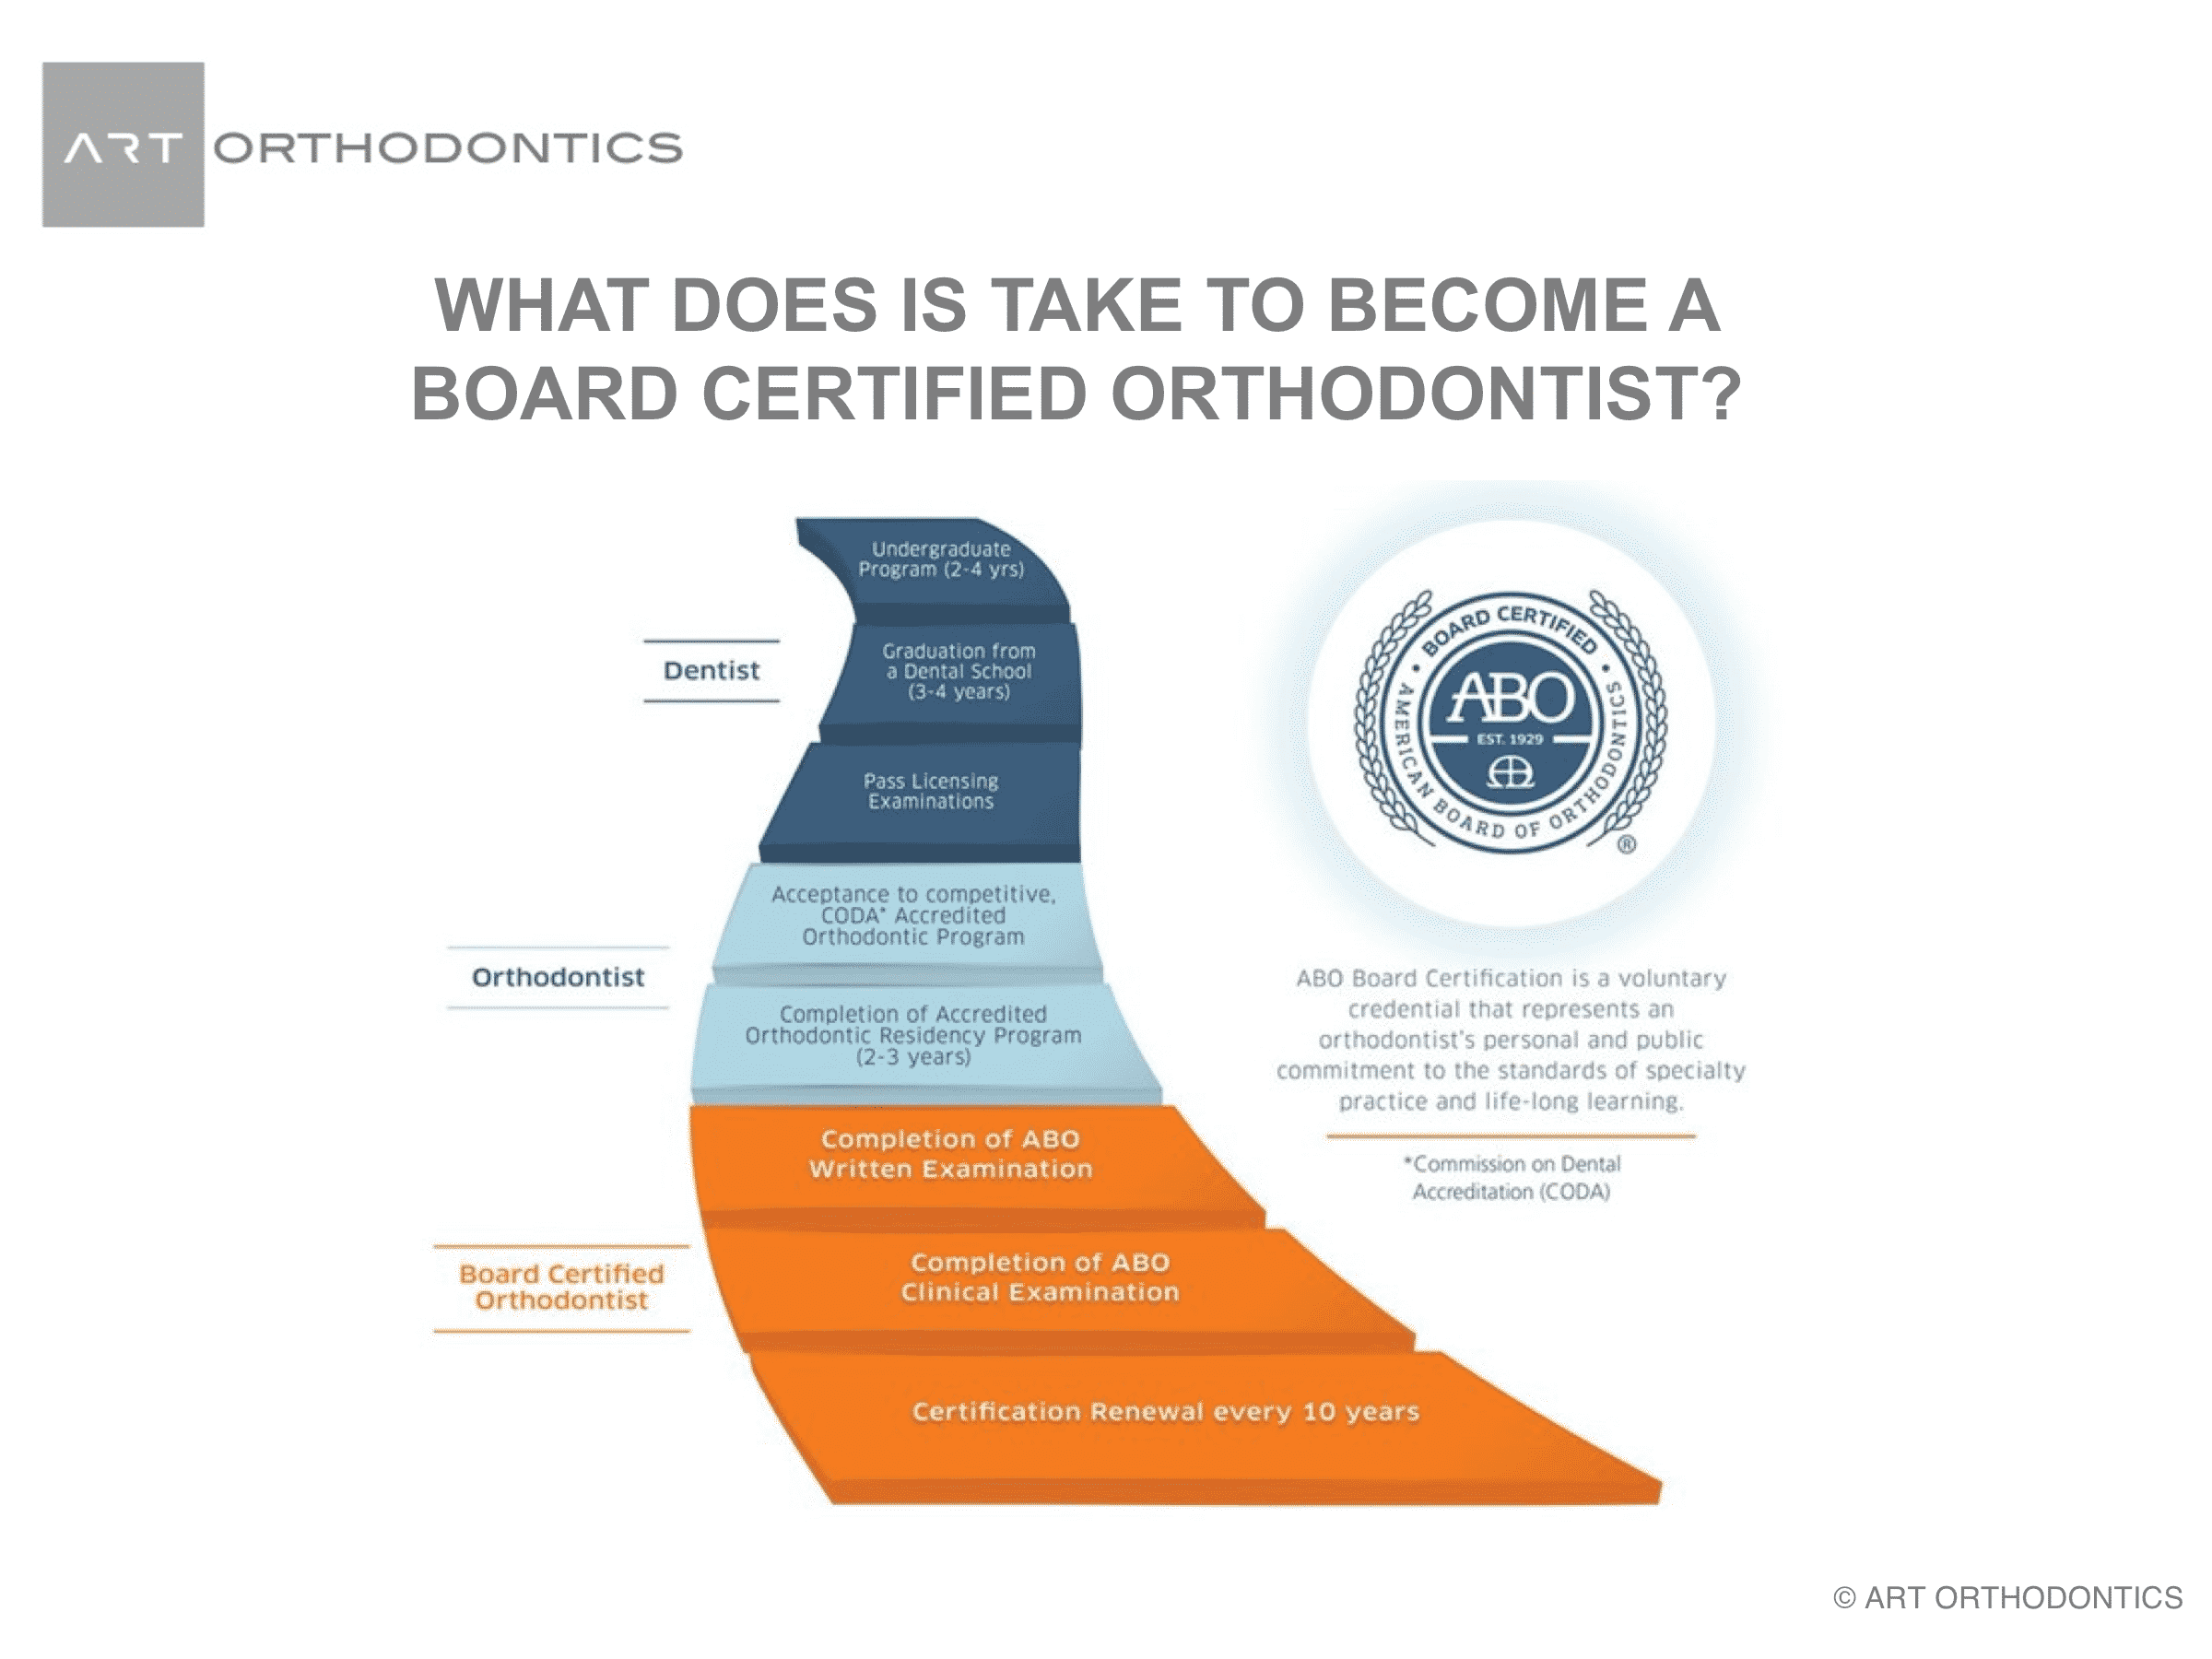 Schematic of the process to become an orthodontist from the American Board of Orthodontics